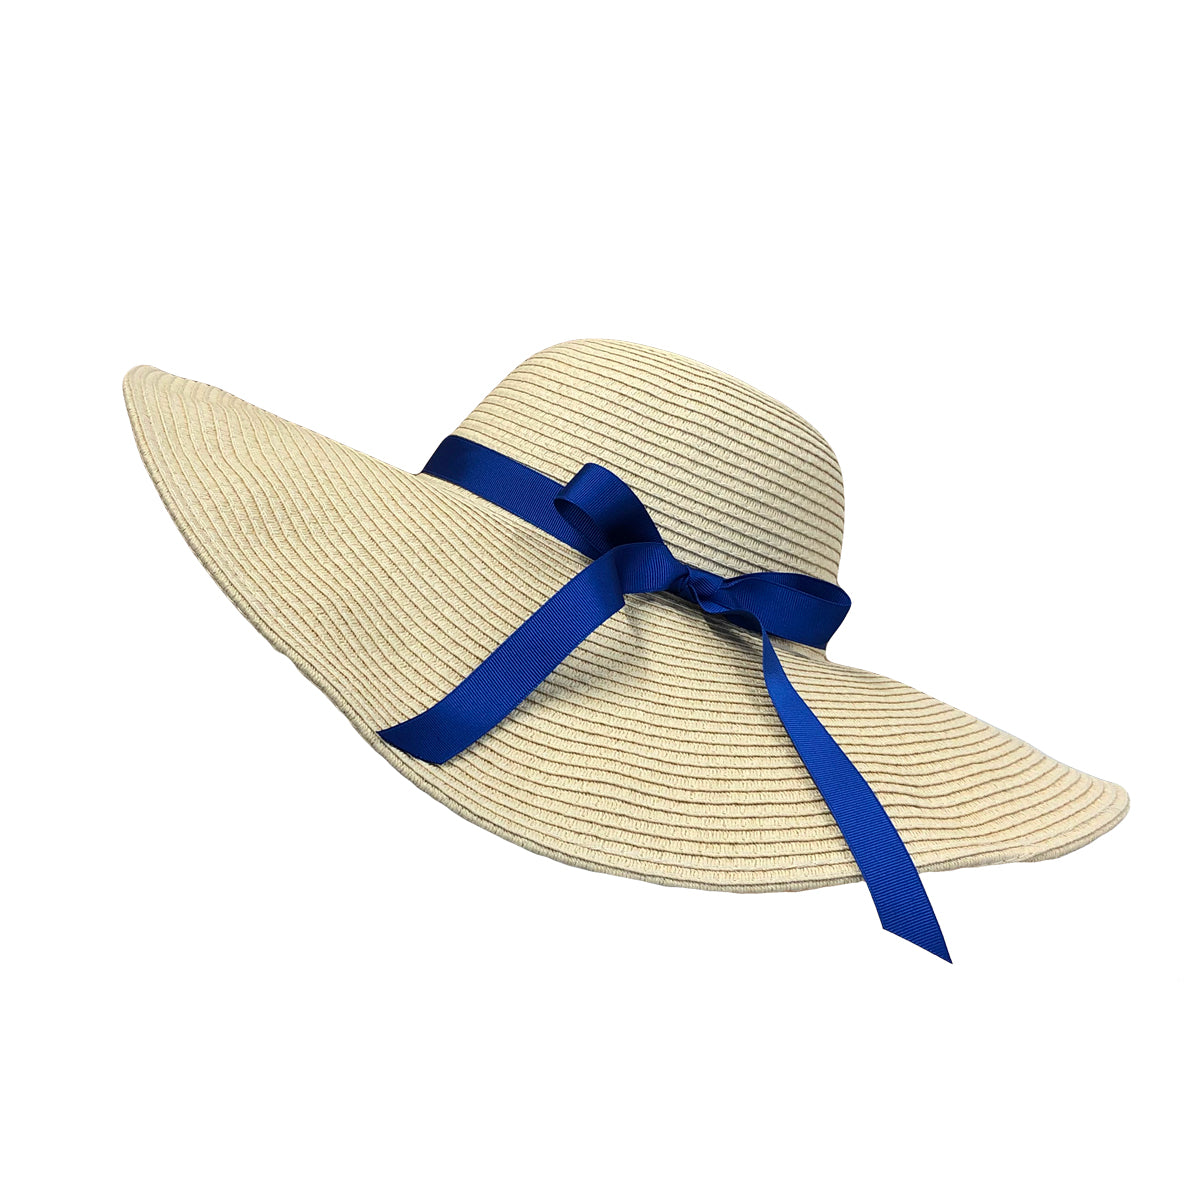 Women Straw Sun Hat Wide Brim Floppy Beach Cap UPF 50+